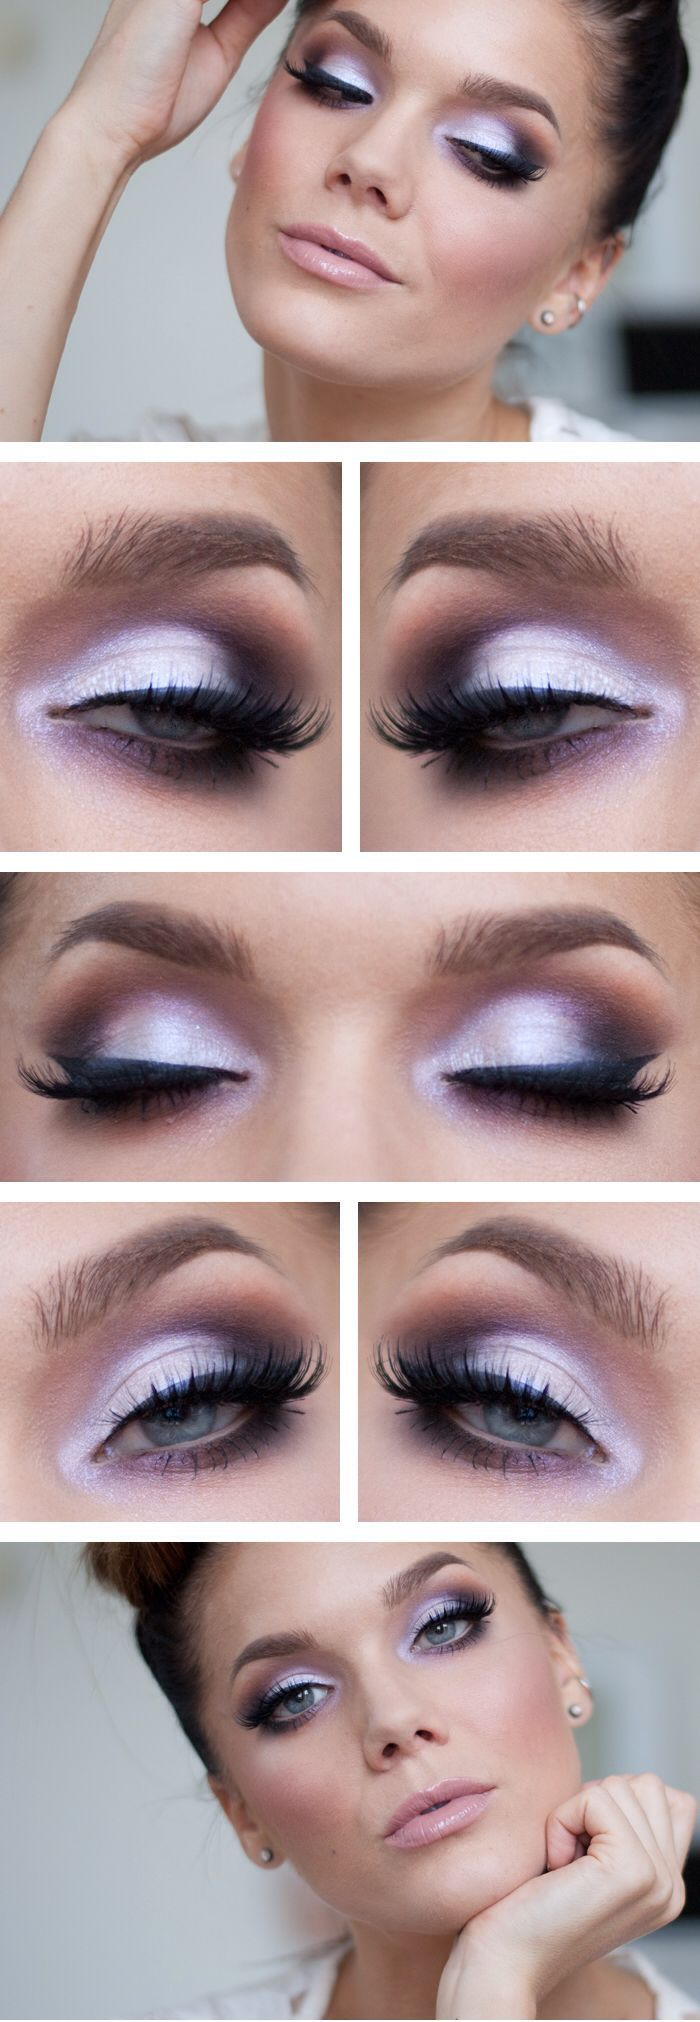 lavender light purple eye makeup.  It's not too dark that it looks like you're going clubbing but still gives a nice pop for wow effect